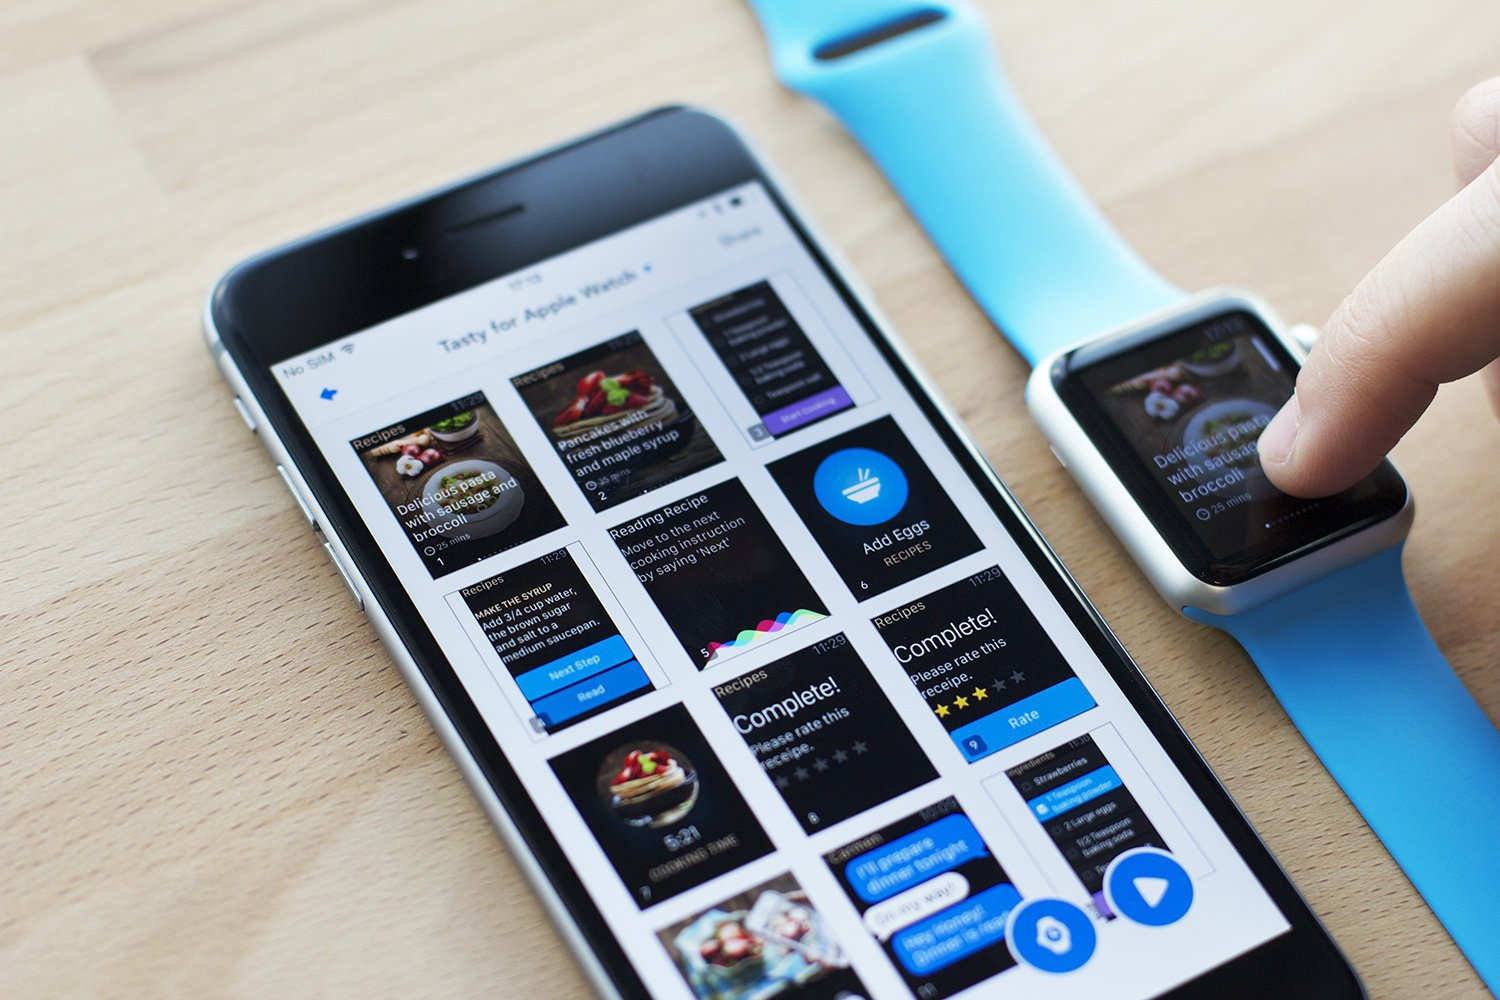 You can now view your sketches and design mockups on the Apple Watch!